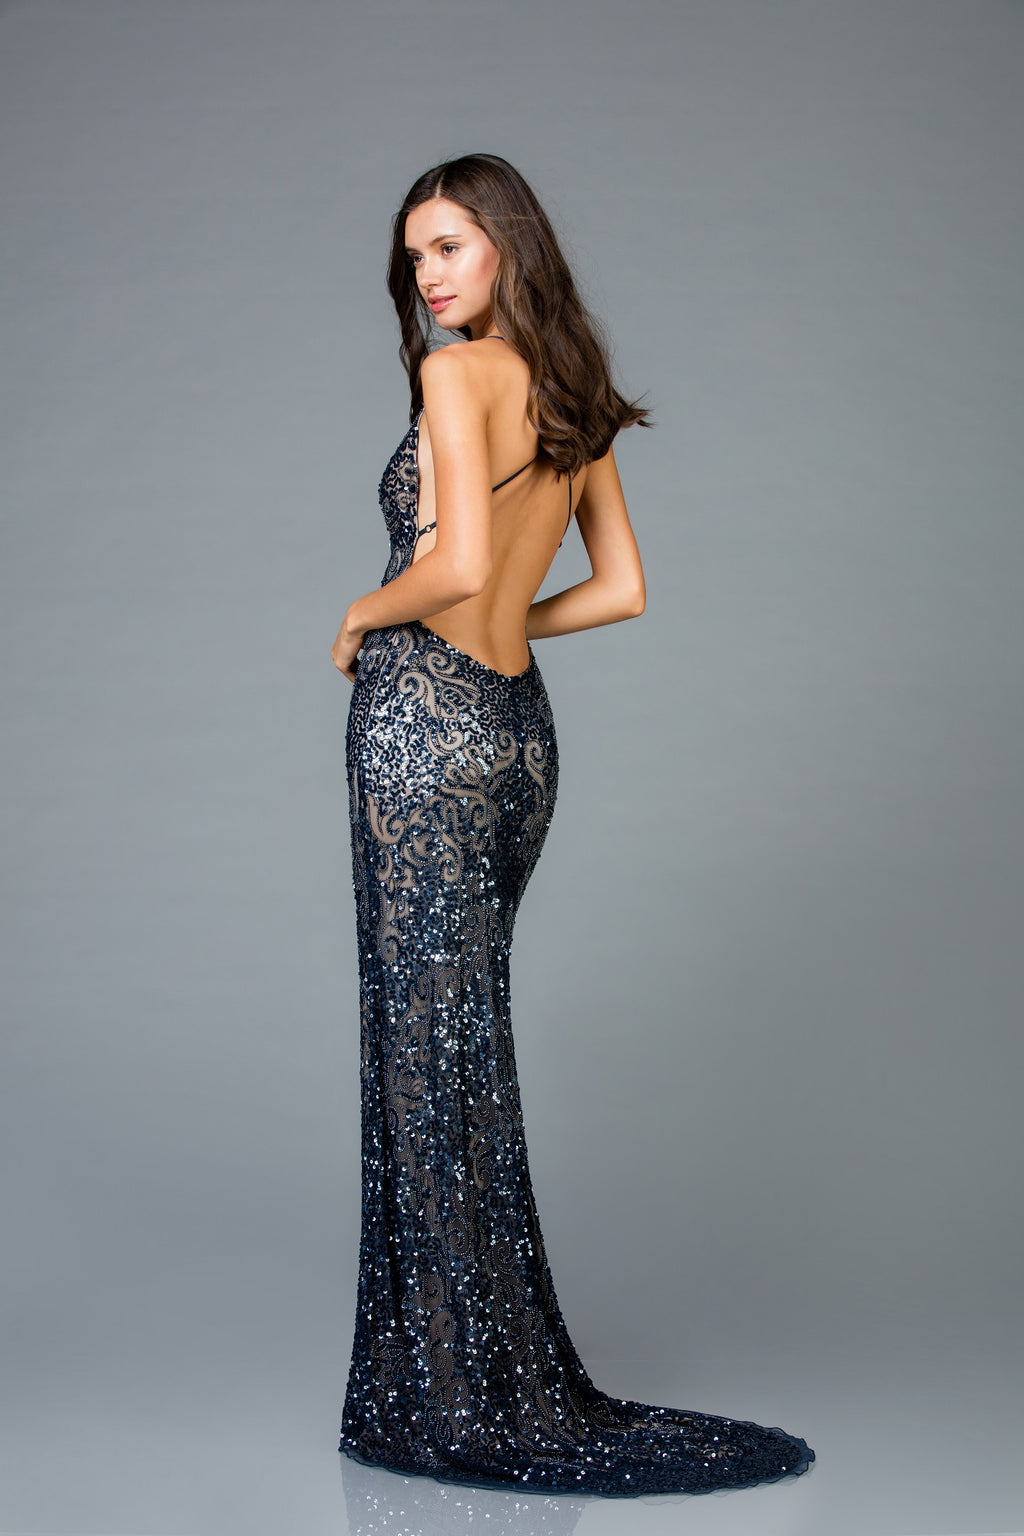 Scala 48977 Sequin Evening Dress - CYC Boutique